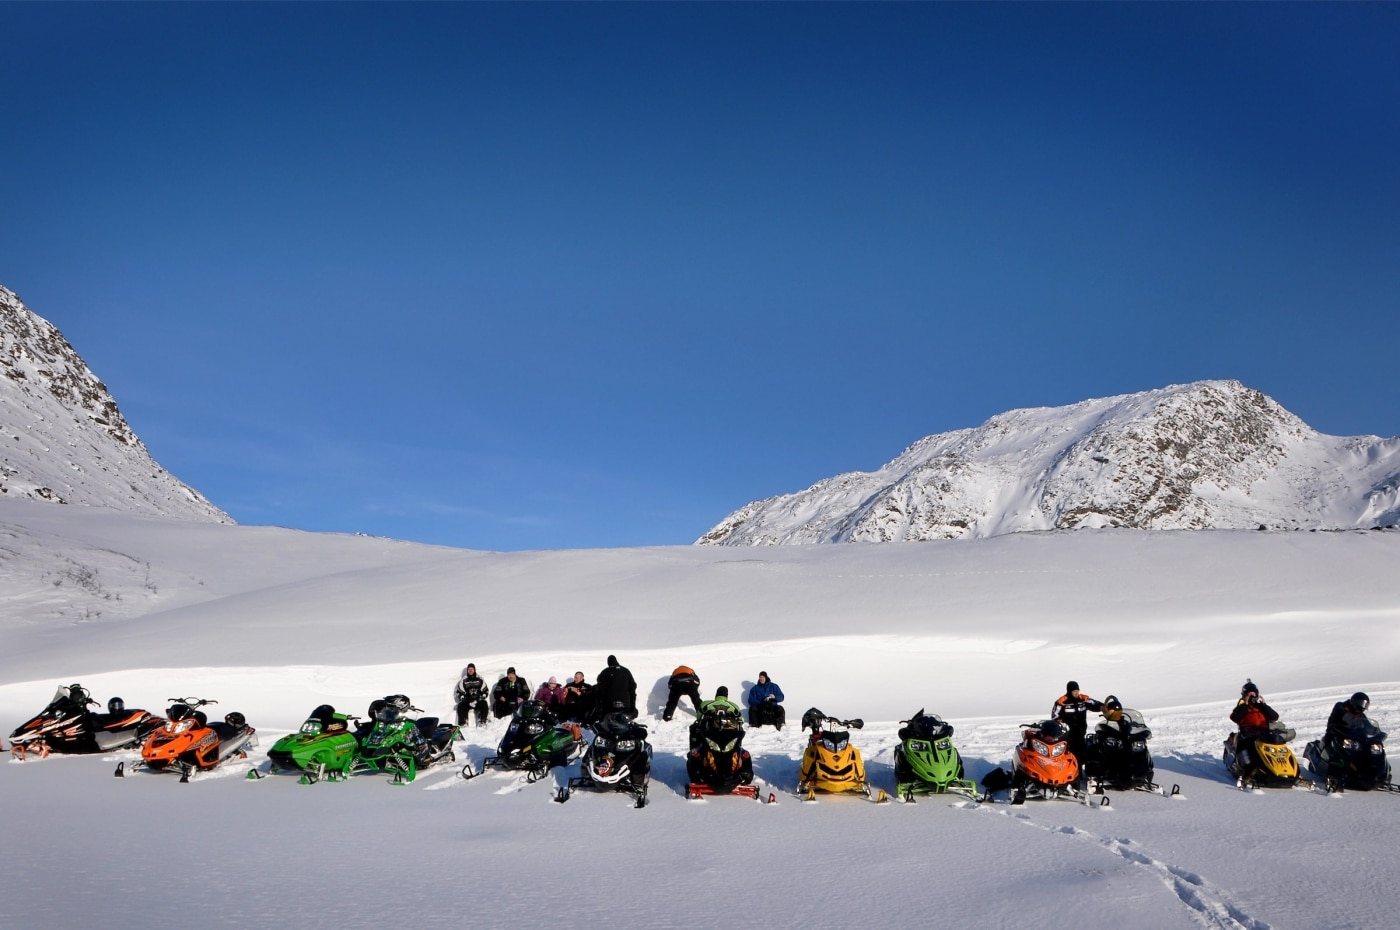 A group of snowmobilers enjoying the spring sun near Sisimiut in Greenland. Photo by Mads Pihl - Visit Greenland.